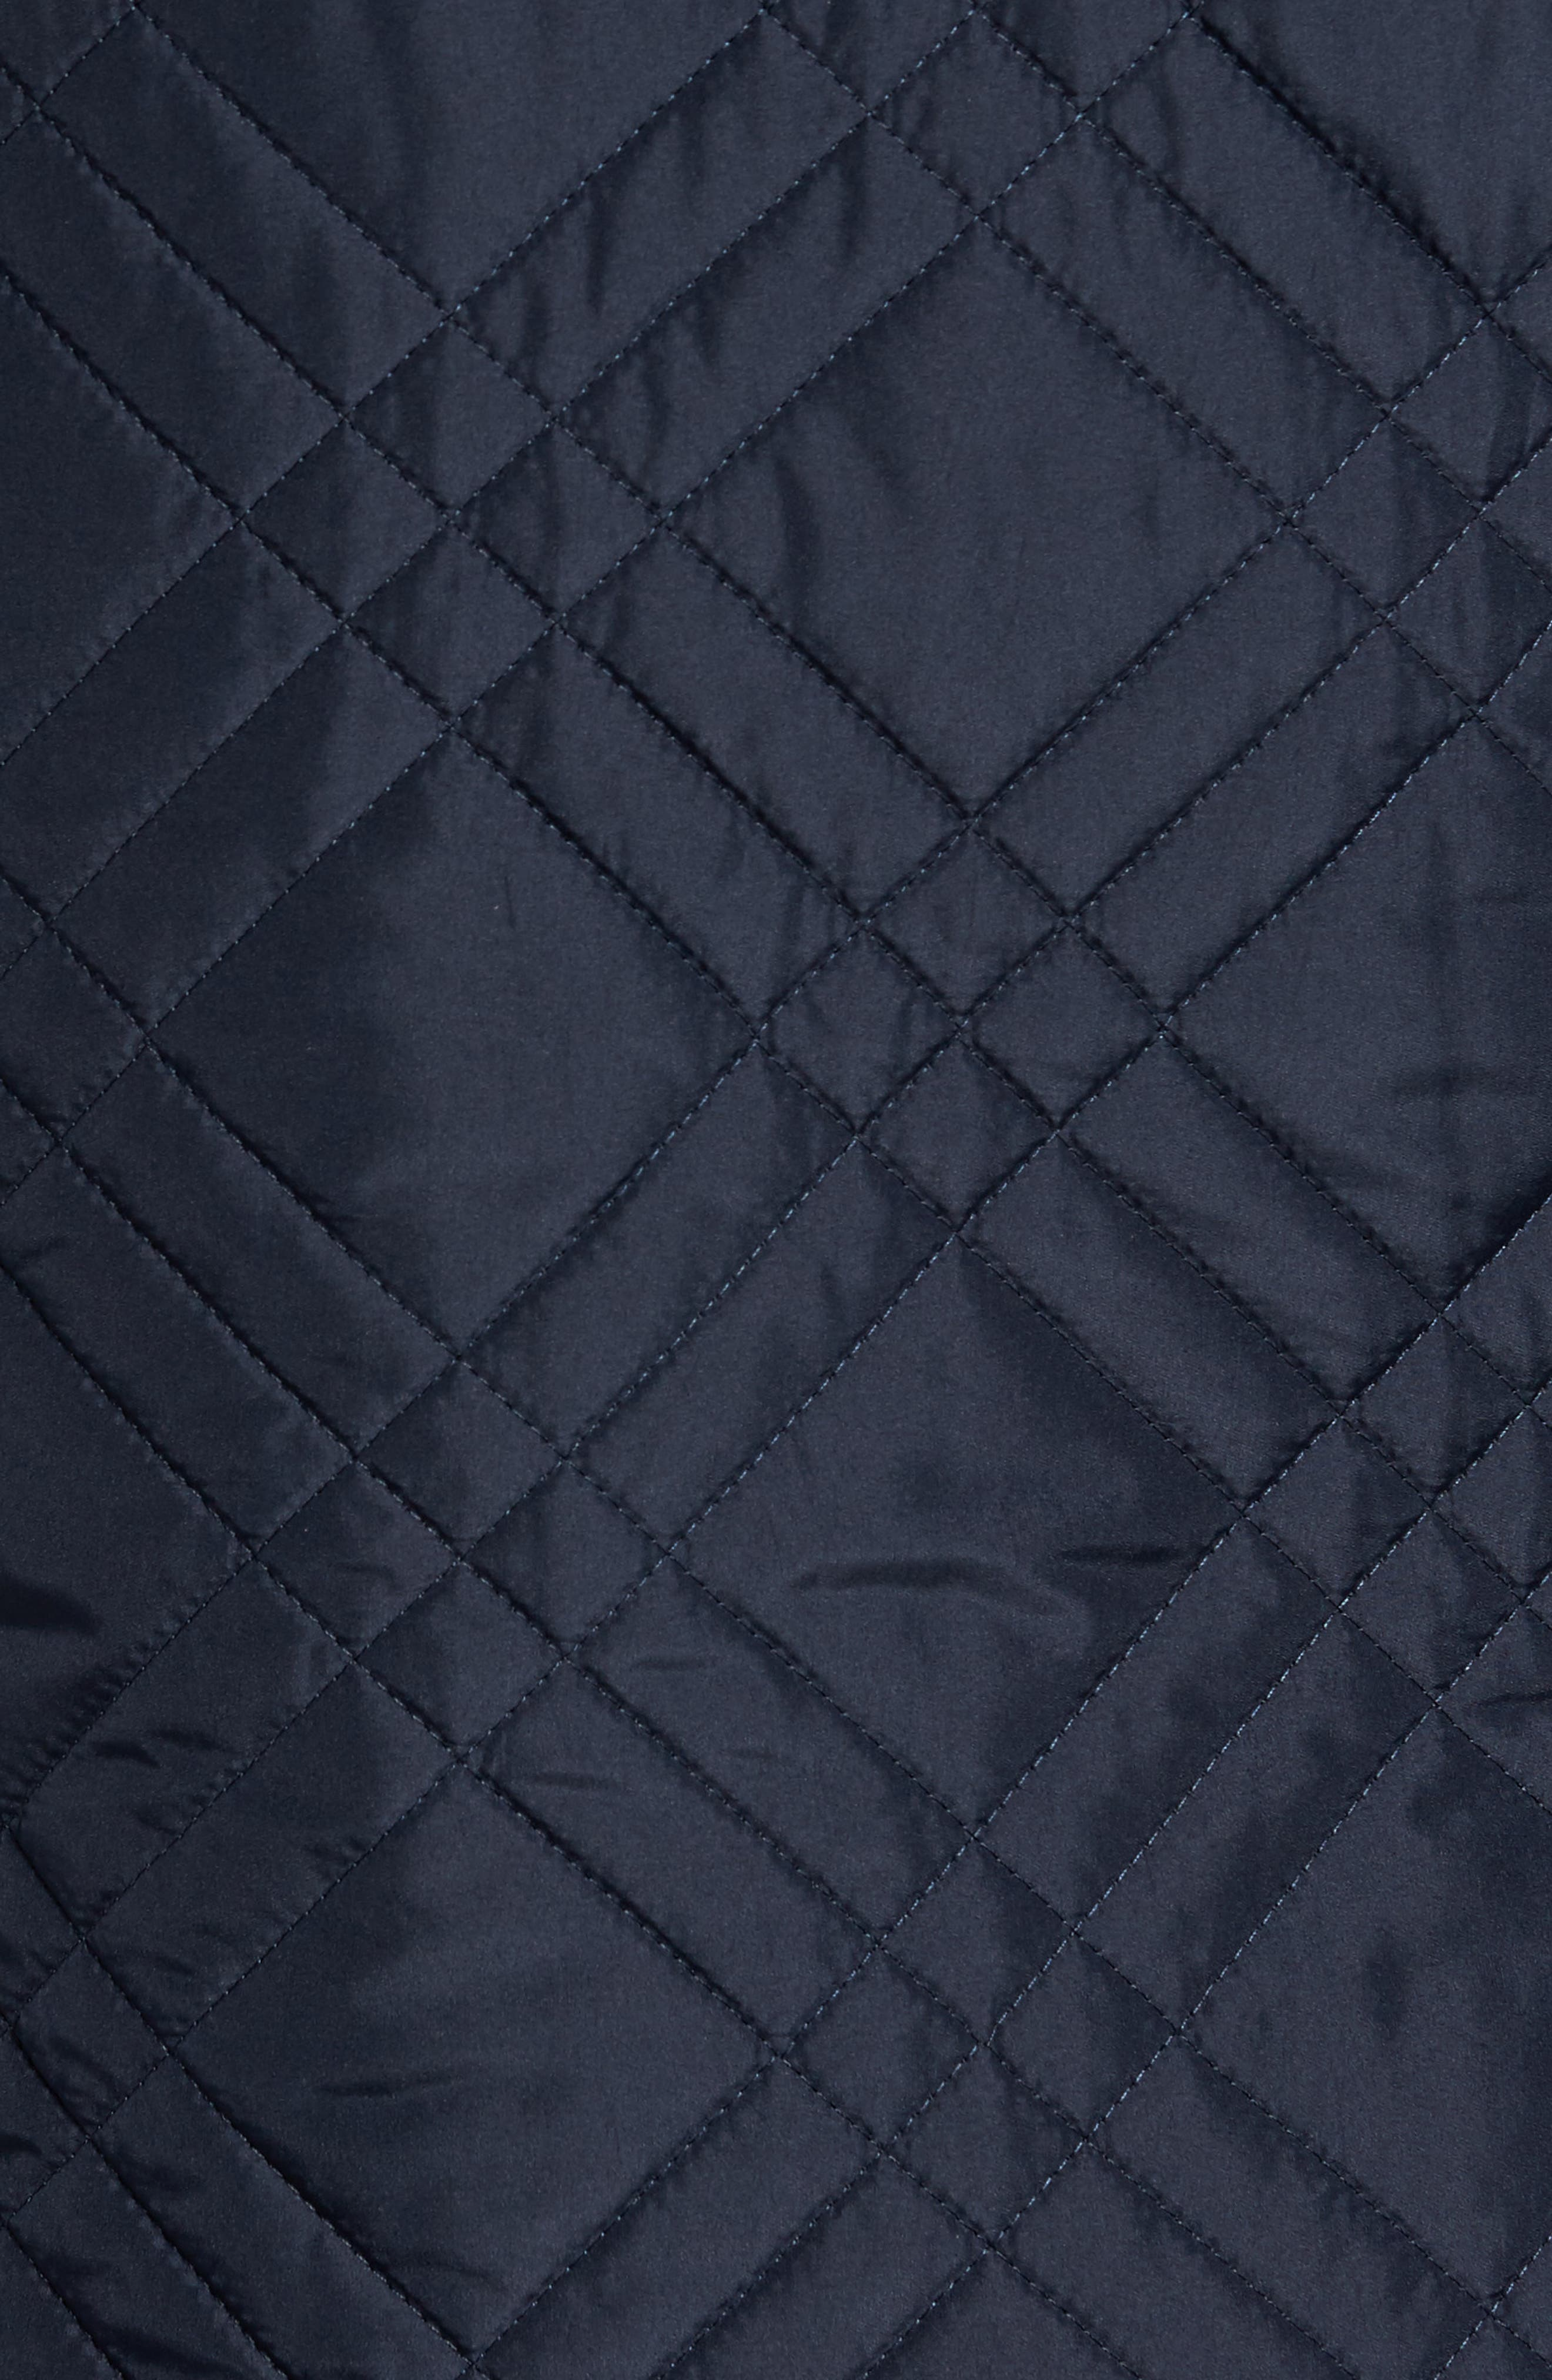 Quilted Field Jacket,                             Alternate thumbnail 5, color,                             Blue Navy